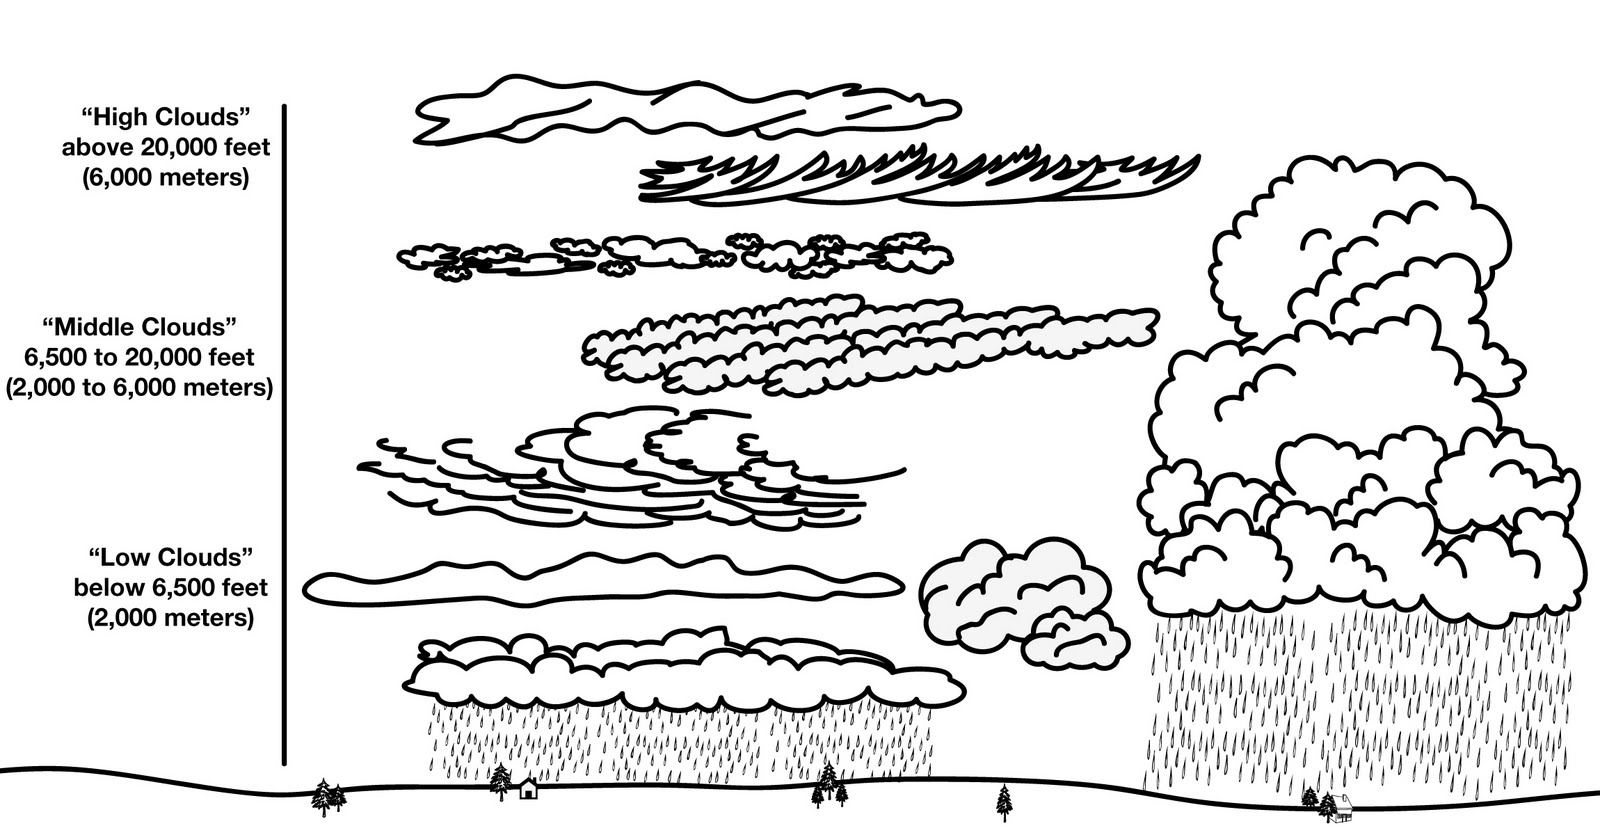 Worksheets Cloud Types Worksheet other graphical works august 2011 saturday 6 2011